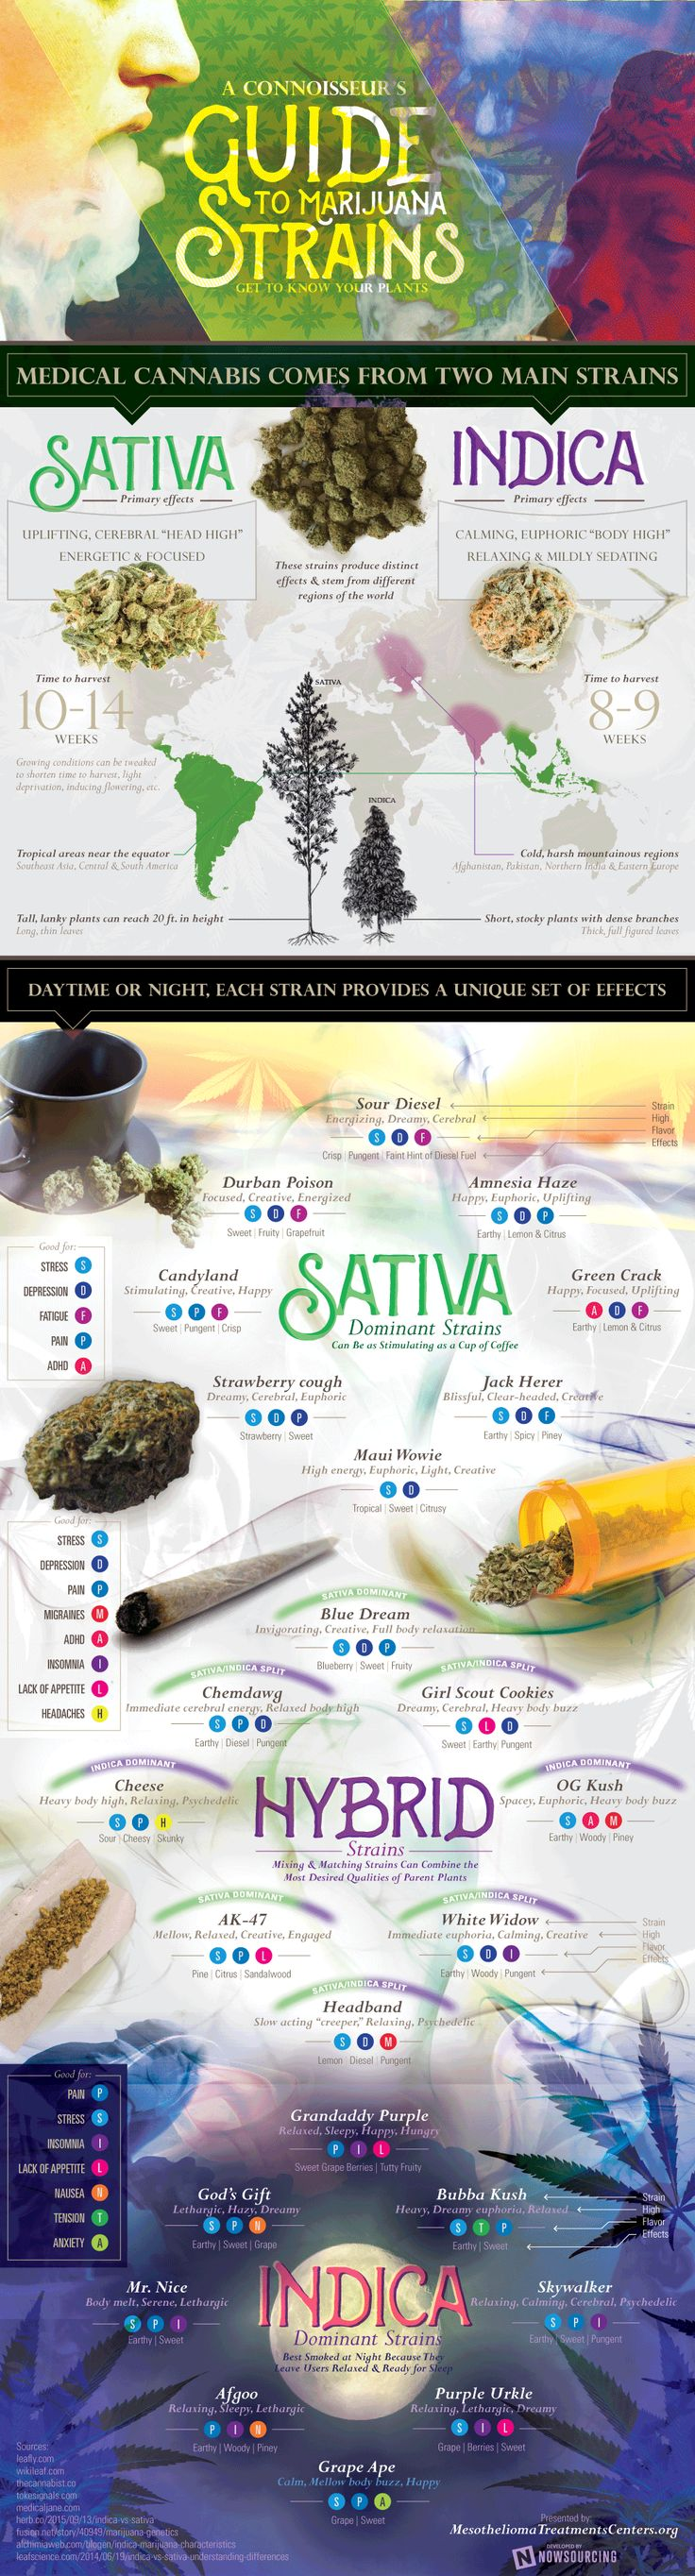 Get To Know Marijuana Plants Better - Infographic http://stores.ebay.com/nutritionalwellnessstore